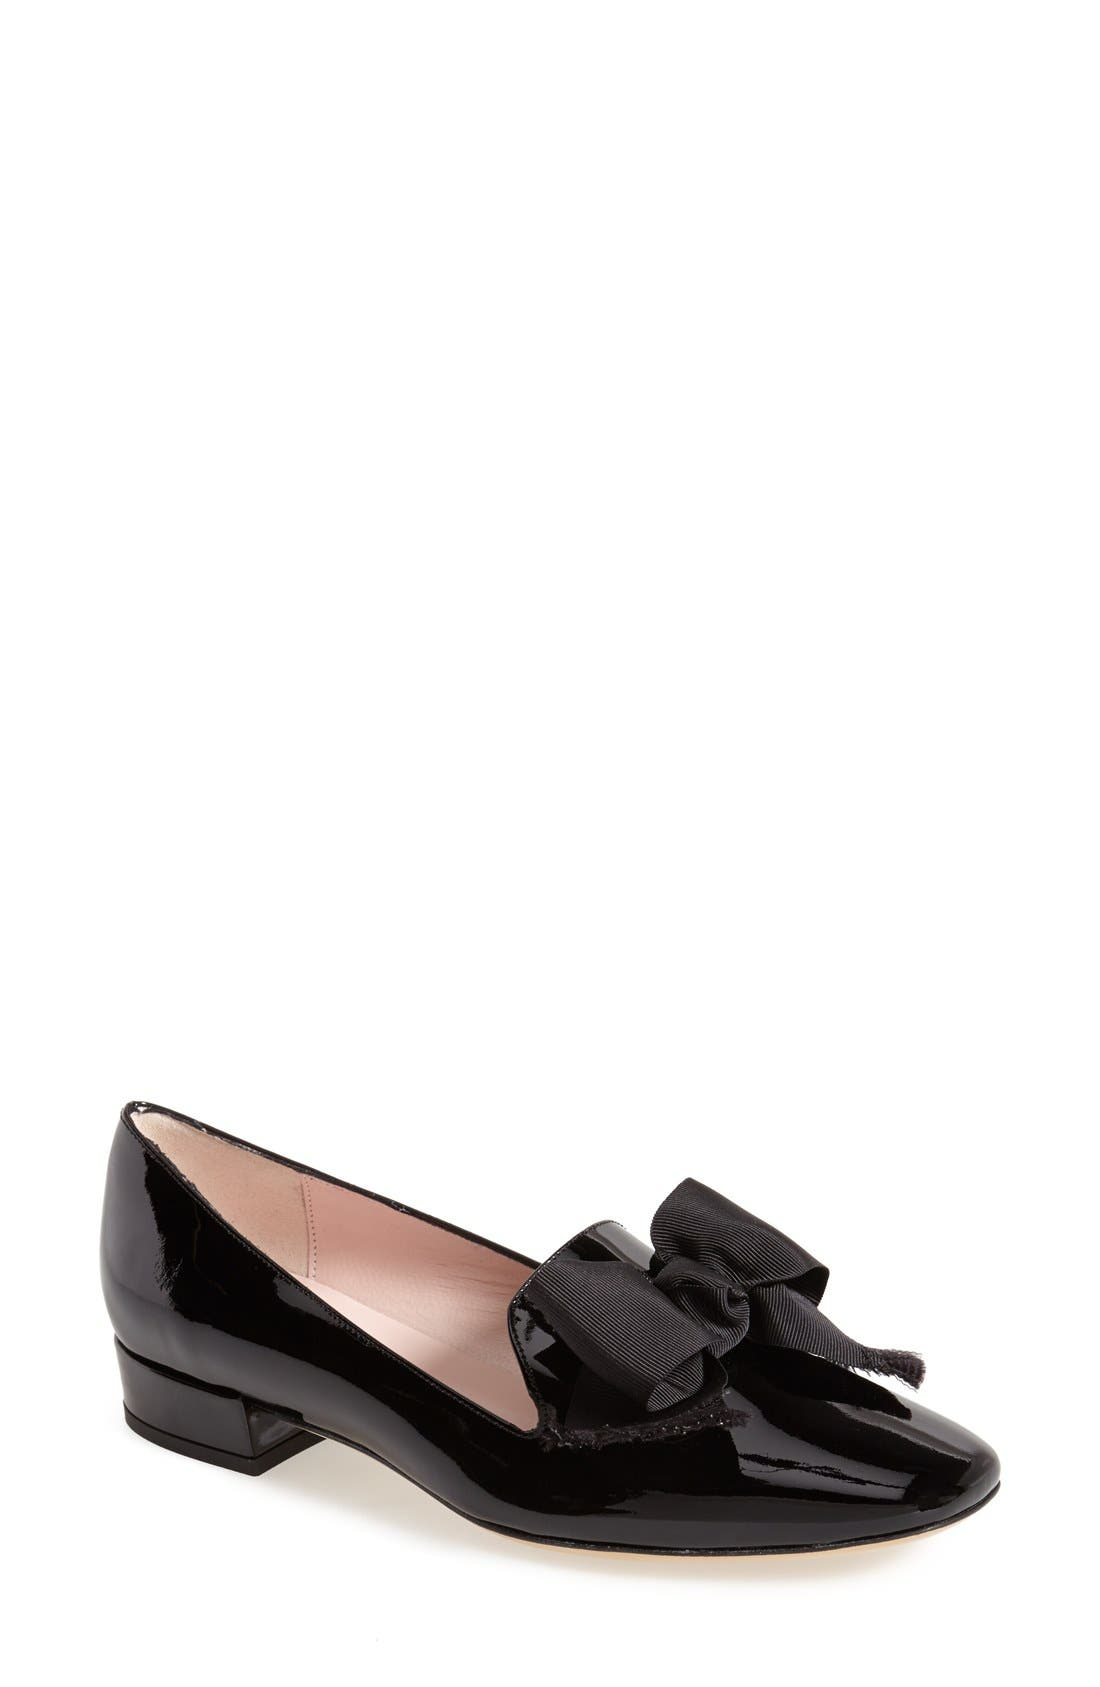 KATE SPADE NEW YORK 'gino' loafer